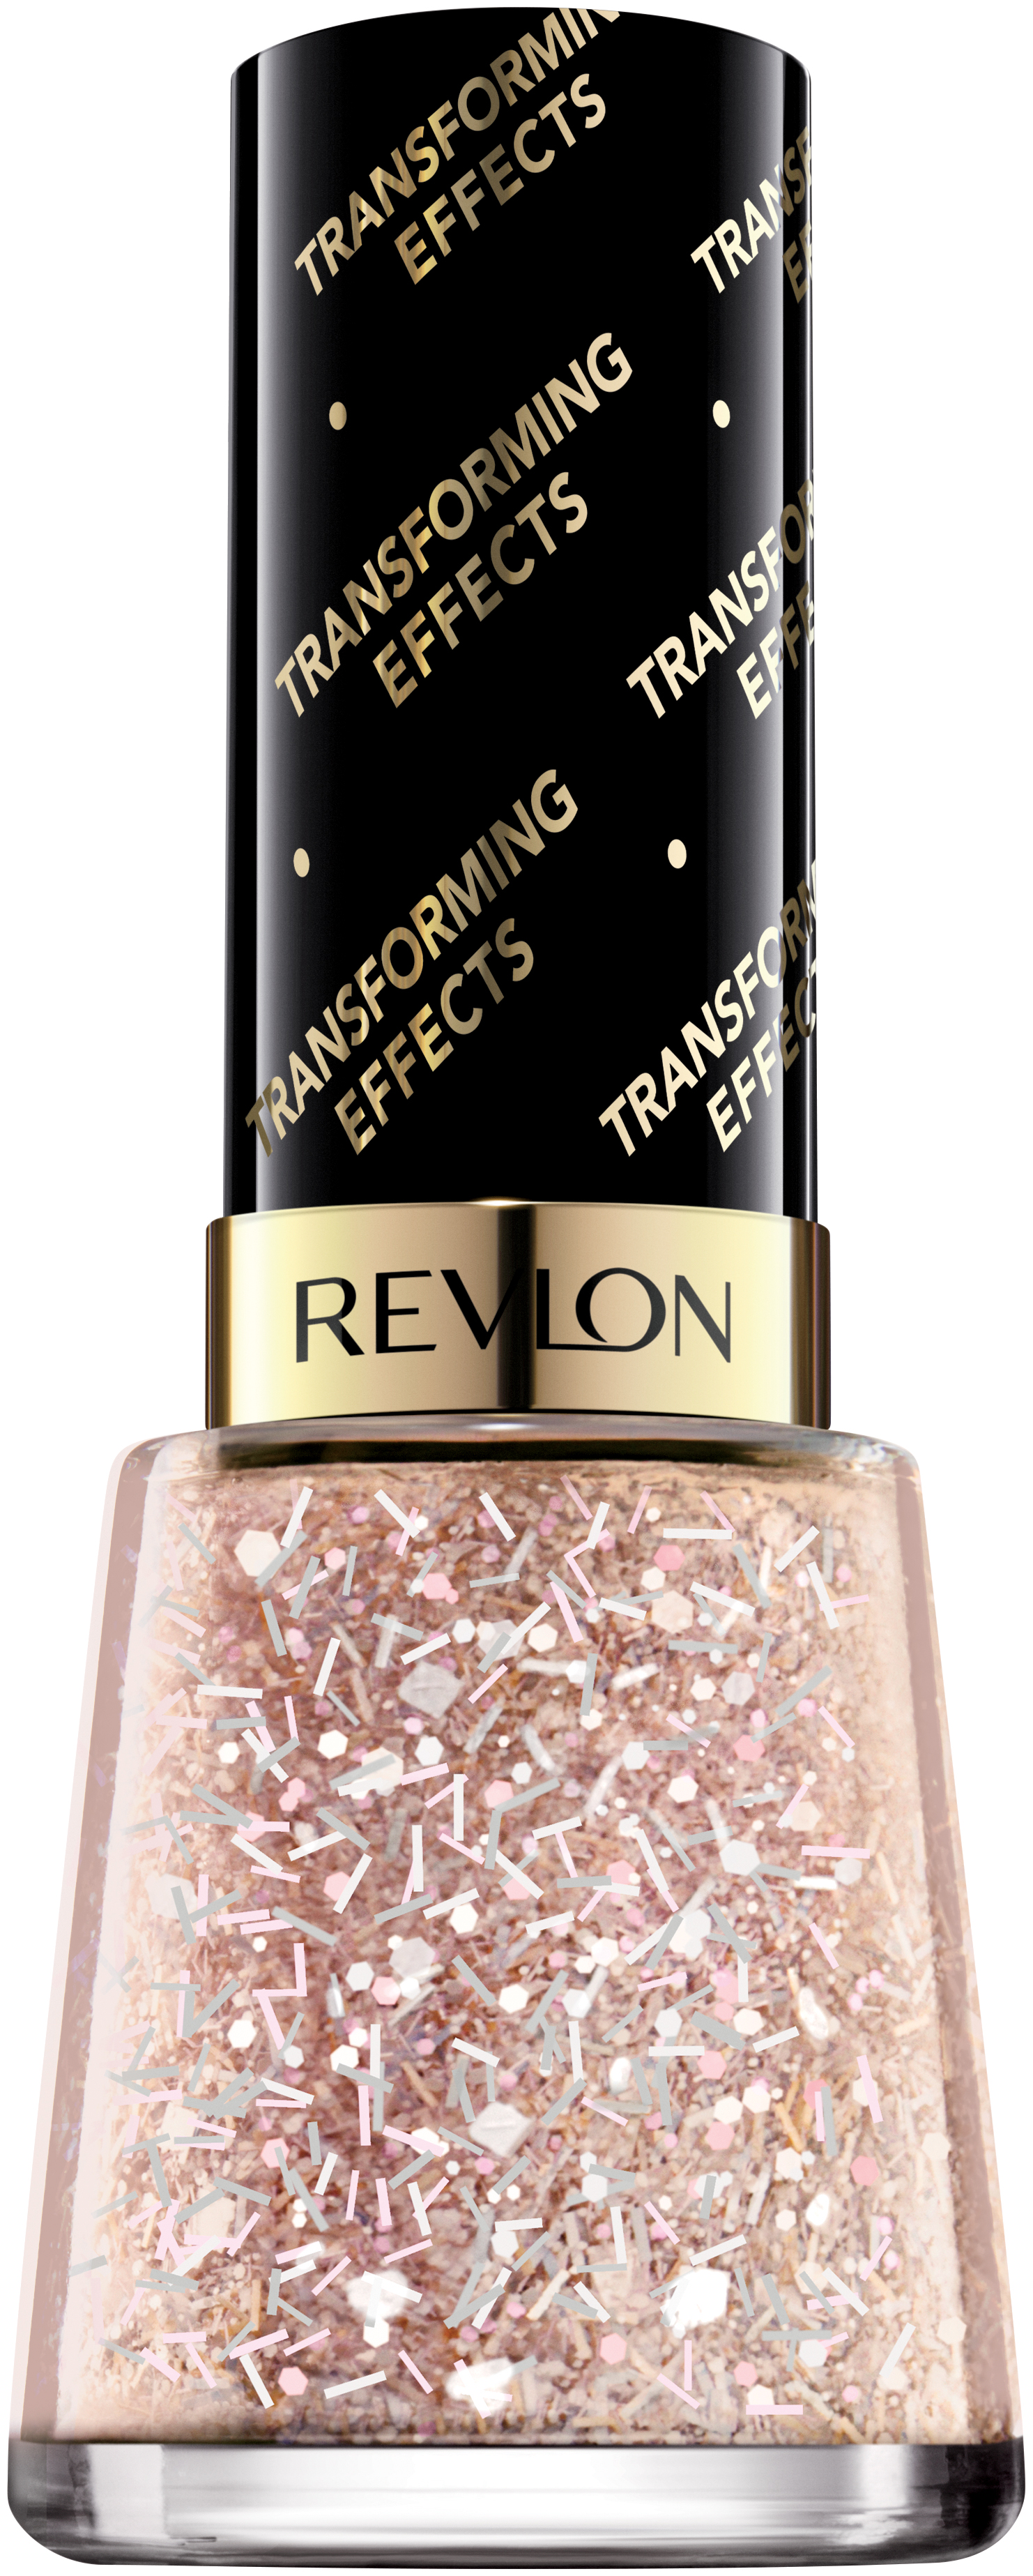 Transforming EffectsTM Top Coats $13.95